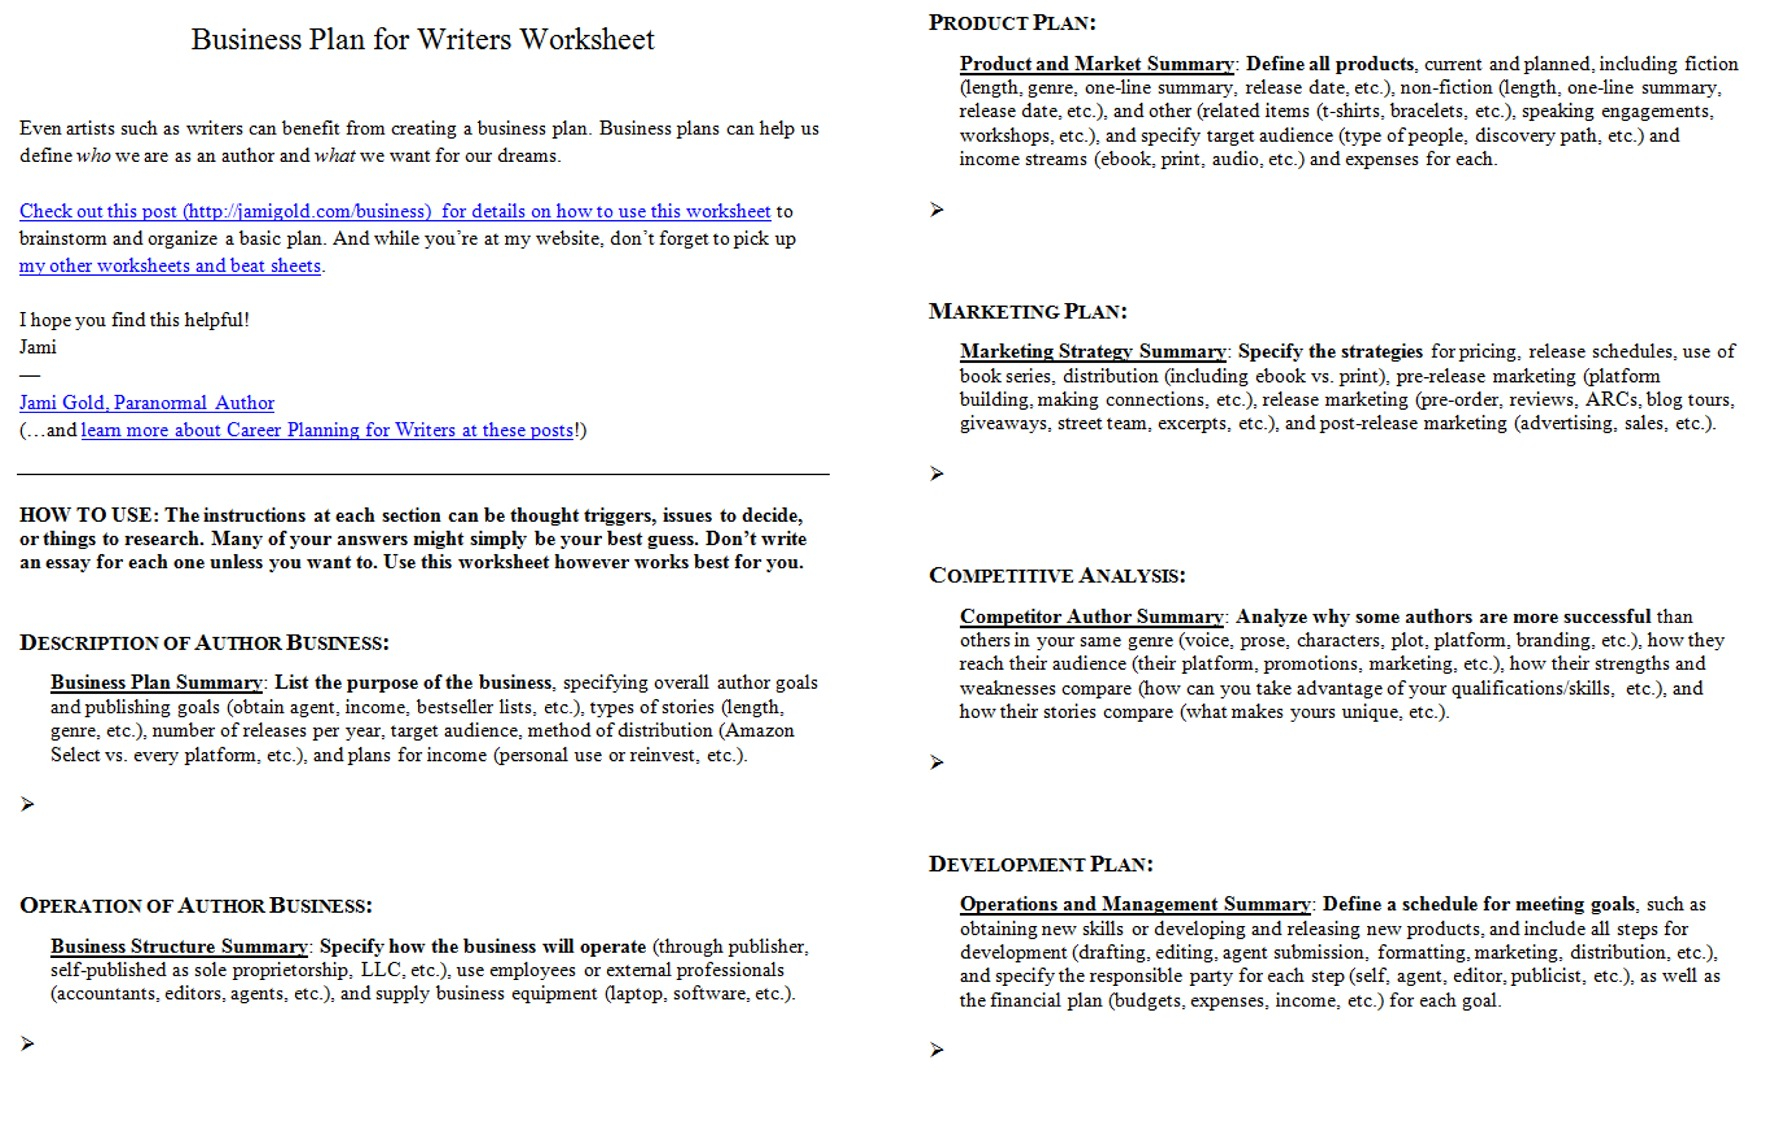 Aldiablosus  Pleasant Worksheets For Writers  Jami Gold Paranormal Author With Hot Screen Shot Of Both Pages Of The Business Plan For Writers Worksheet With Breathtaking Hand Washing Worksheets Also Math Worksheets With Pictures In Addition Nonfiction Text Features Worksheet Nd Grade And Protect Worksheet Excel  As Well As Reciprocals Worksheet Additionally North America Map Worksheet From Jamigoldcom With Aldiablosus  Hot Worksheets For Writers  Jami Gold Paranormal Author With Breathtaking Screen Shot Of Both Pages Of The Business Plan For Writers Worksheet And Pleasant Hand Washing Worksheets Also Math Worksheets With Pictures In Addition Nonfiction Text Features Worksheet Nd Grade From Jamigoldcom